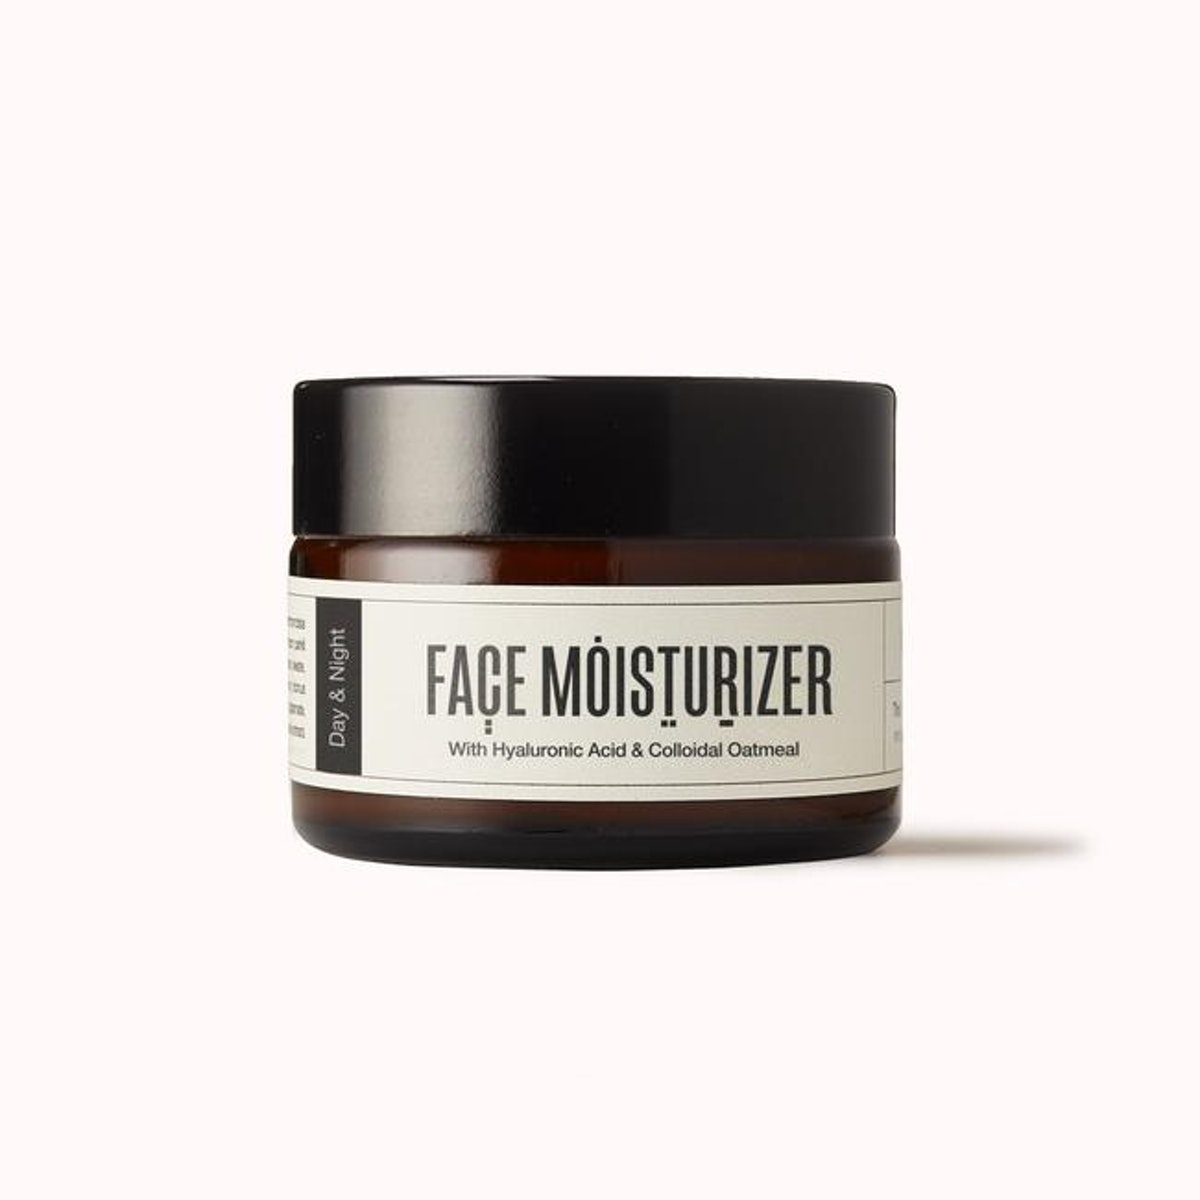 Face Moisturizer with Hyaluronic Acid